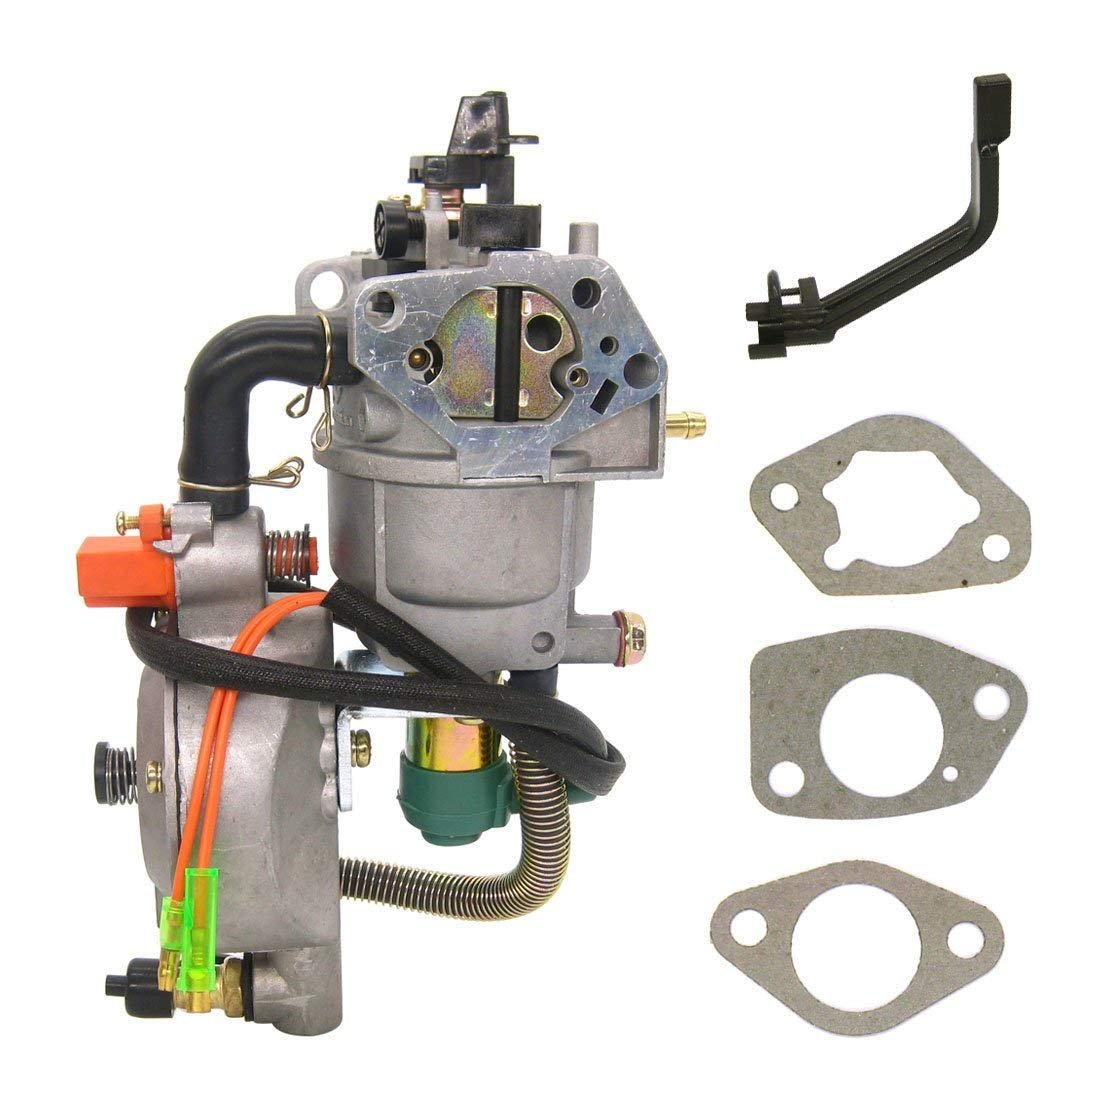 Fuerdi Dual Fuel Carburetor with Manual Choke LPG CNG Conversion KIT for Gasoline Generator 4.5-5.5KW GX390 188F Carburetor